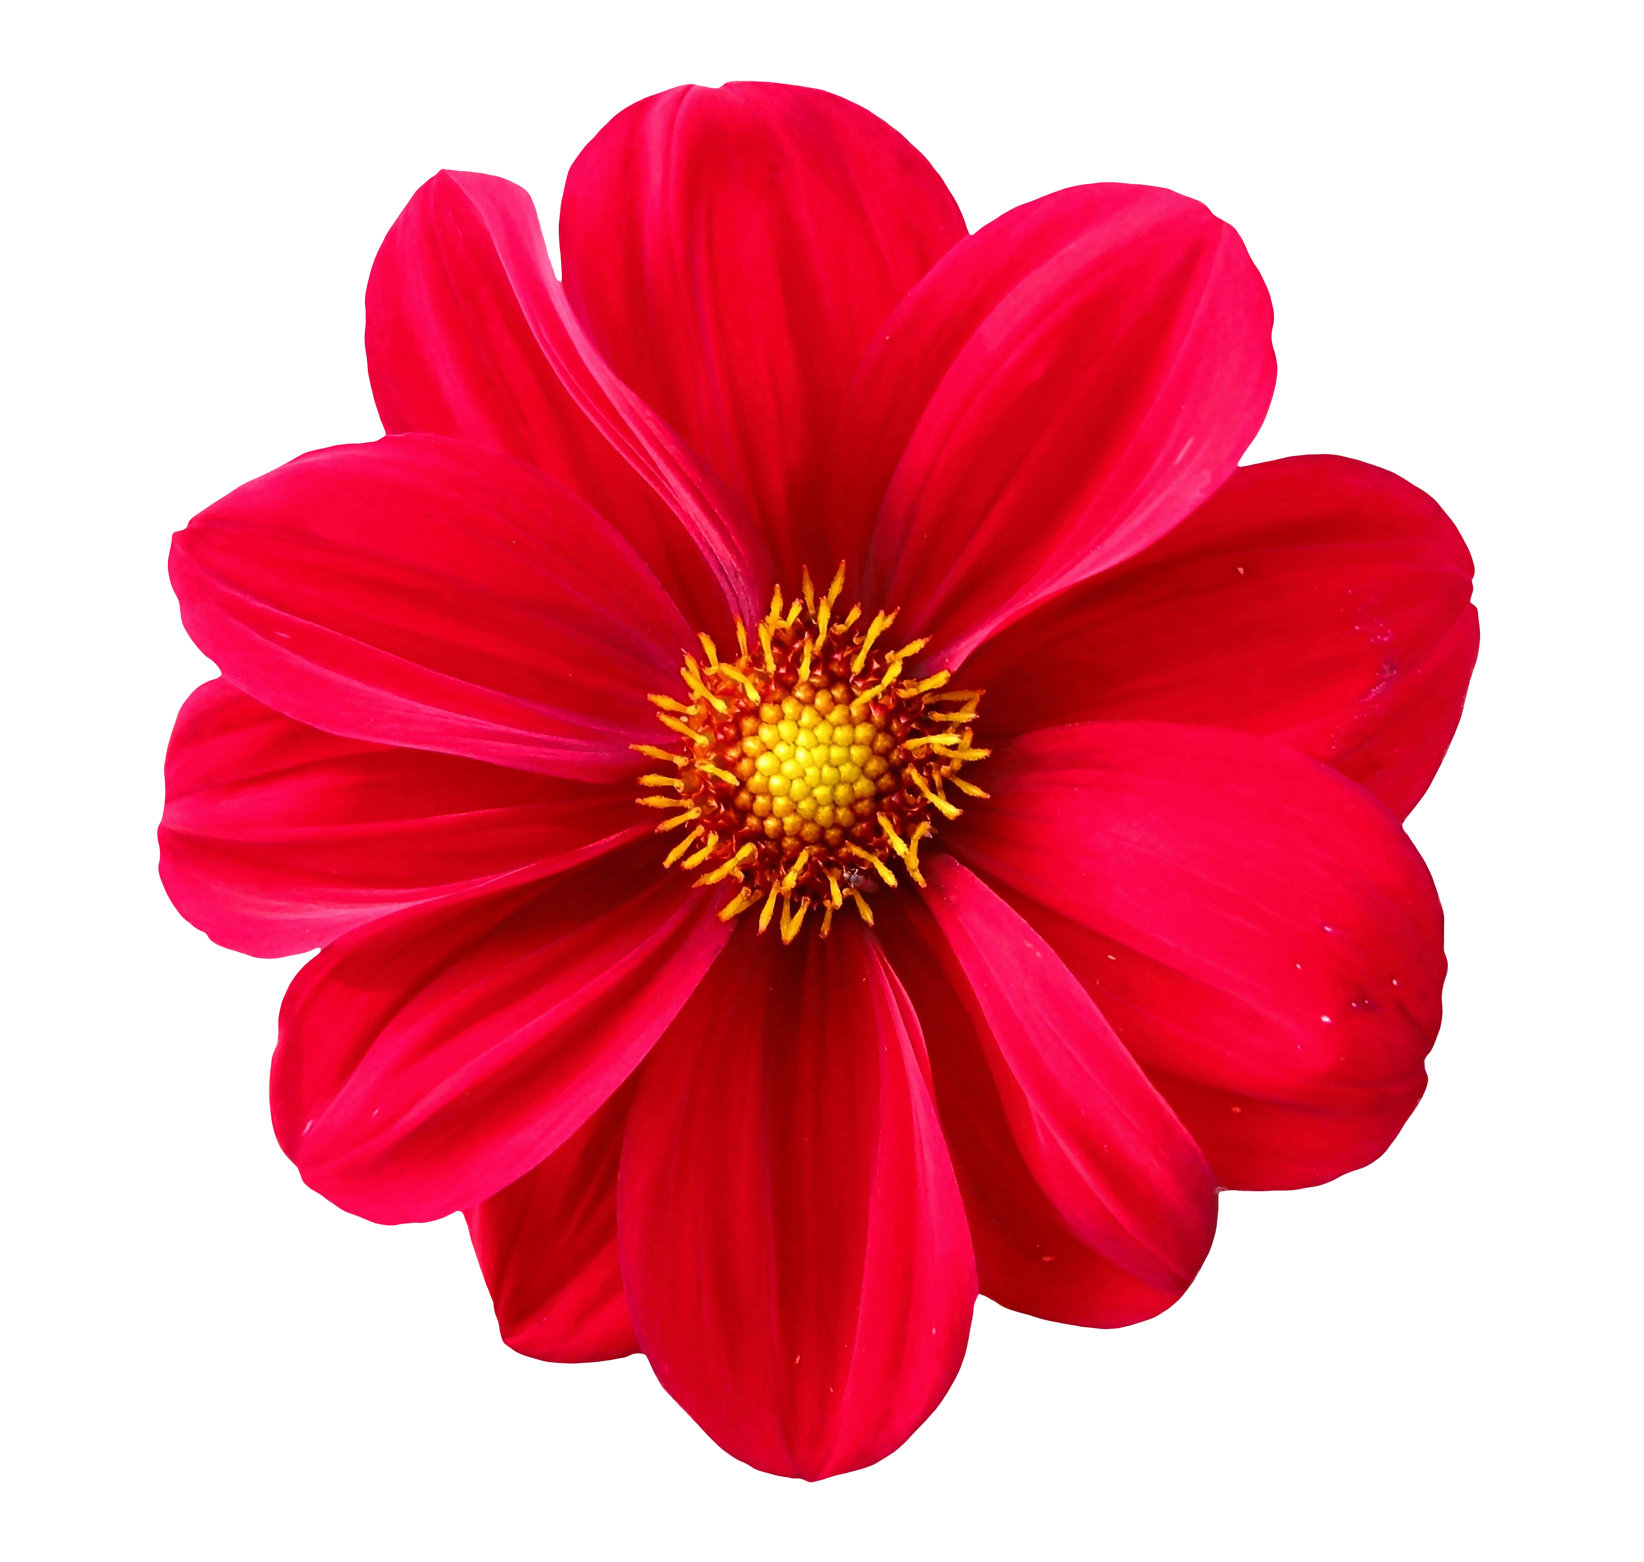 Flower png transparent. Images pluspng dahlia image